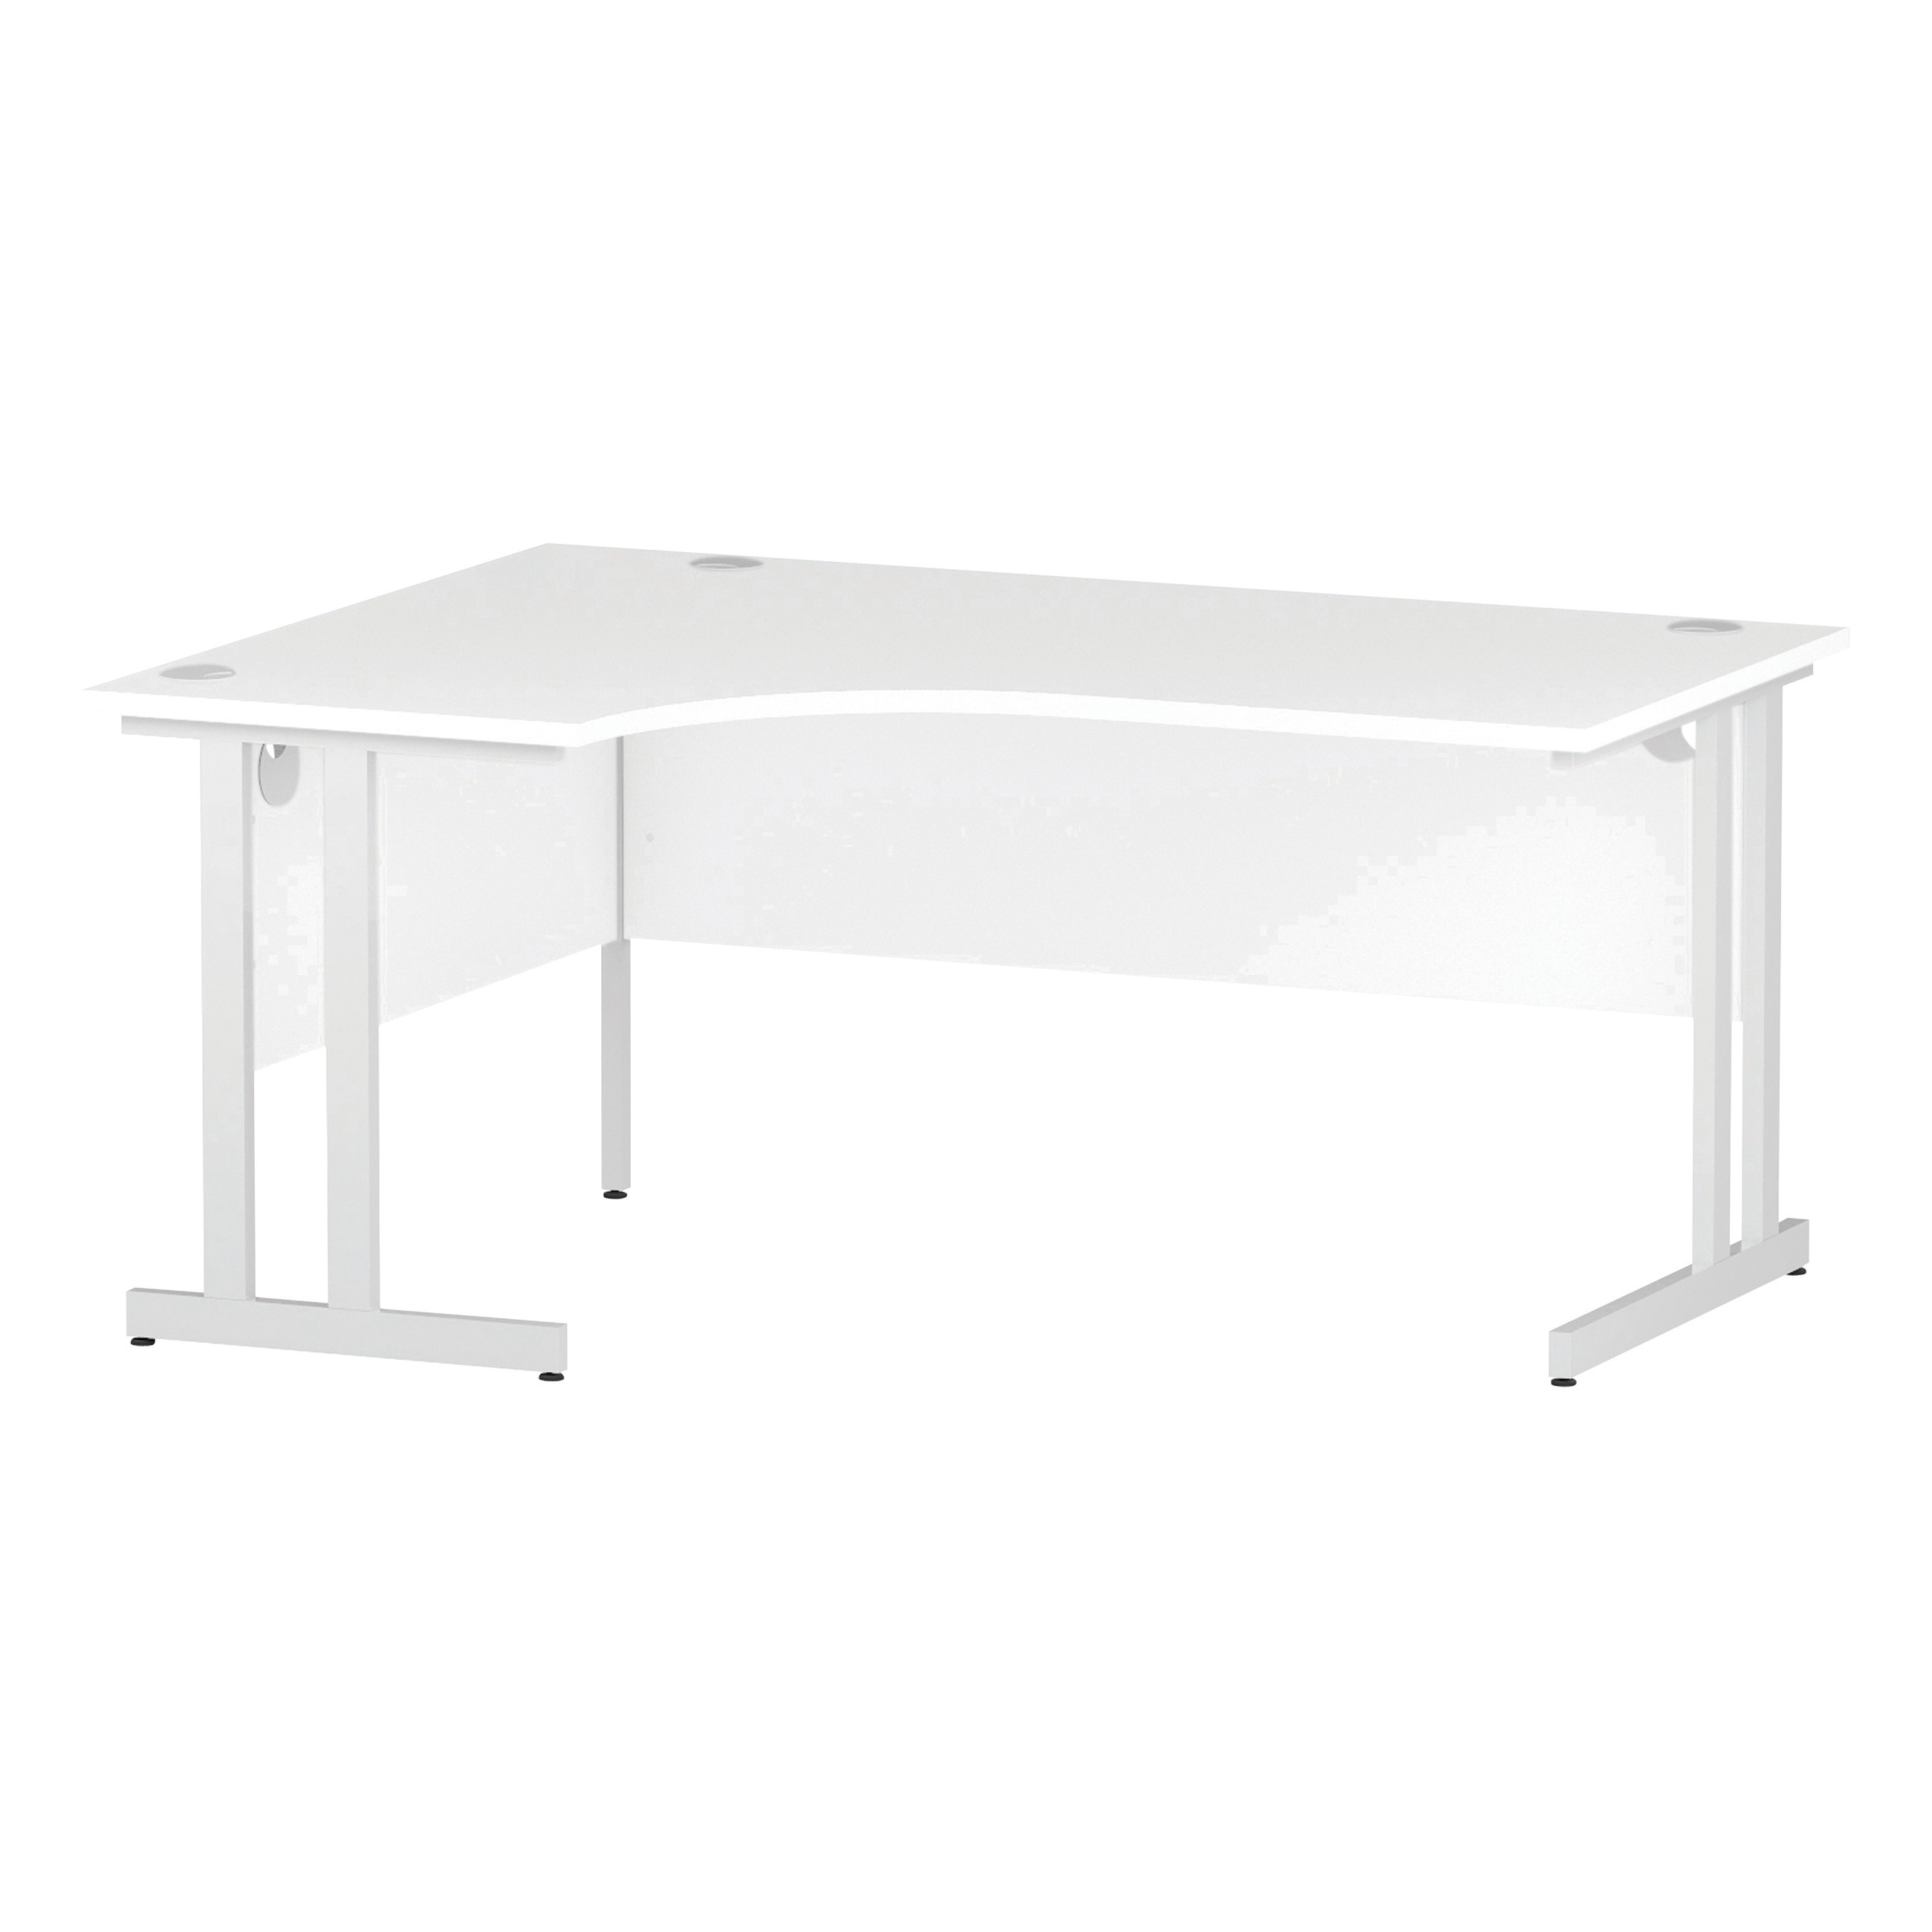 Trexus Radial Desk Left Hand White Cantilever Leg 1600mm White Ref I002392